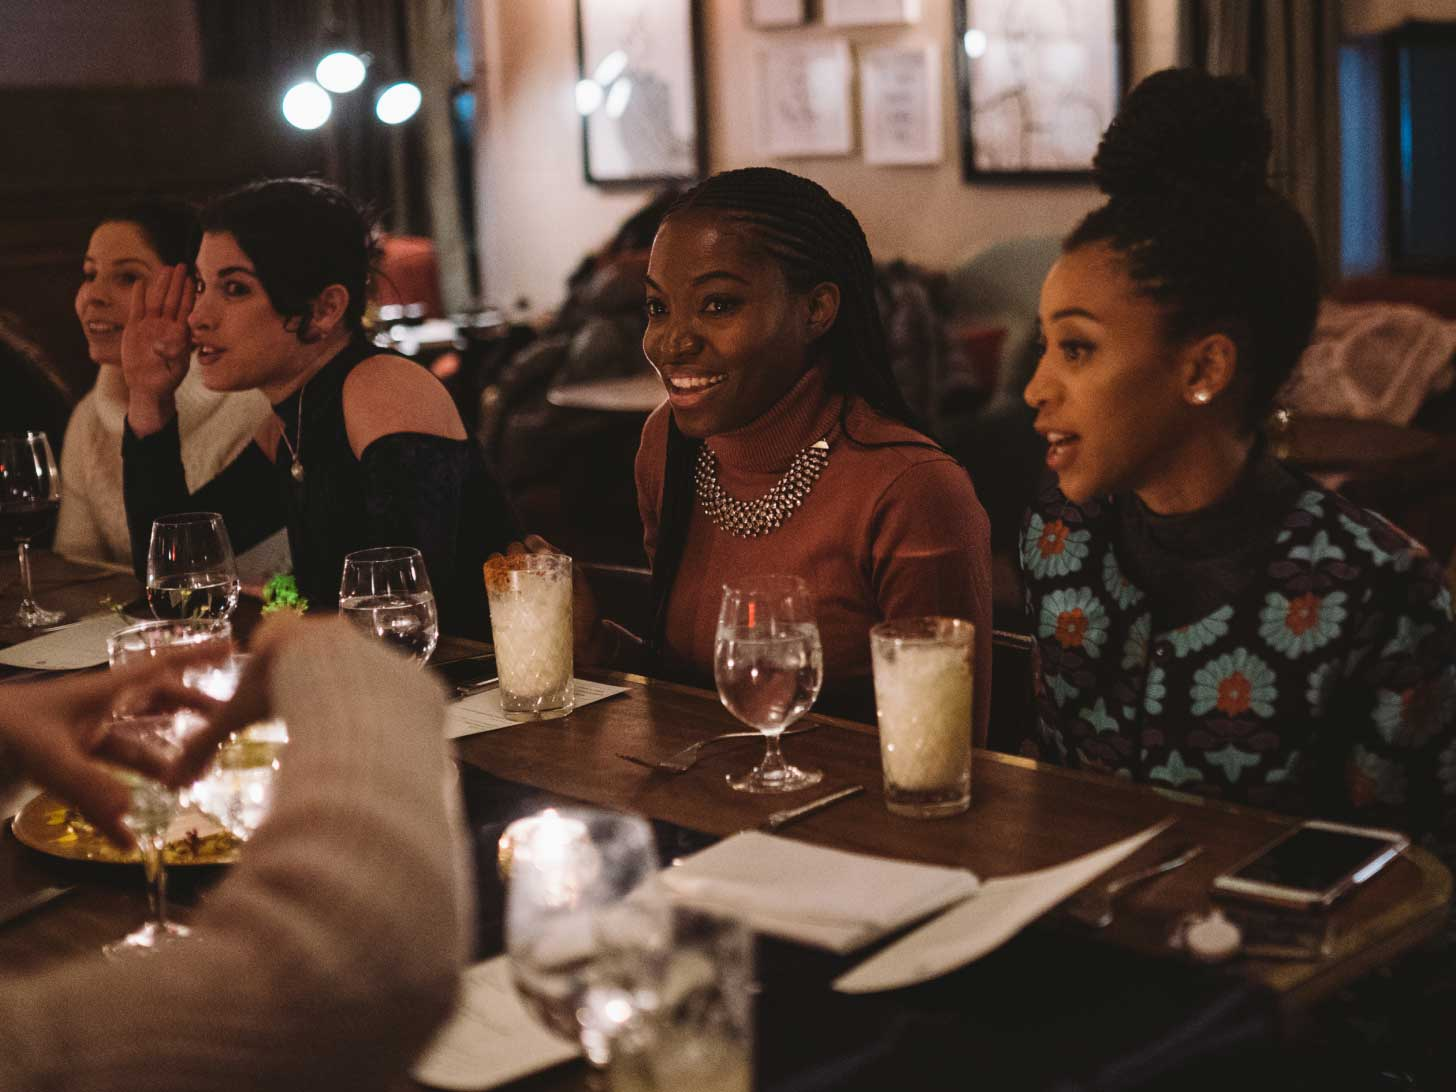 Two women chatting with other people over a formal dinner.